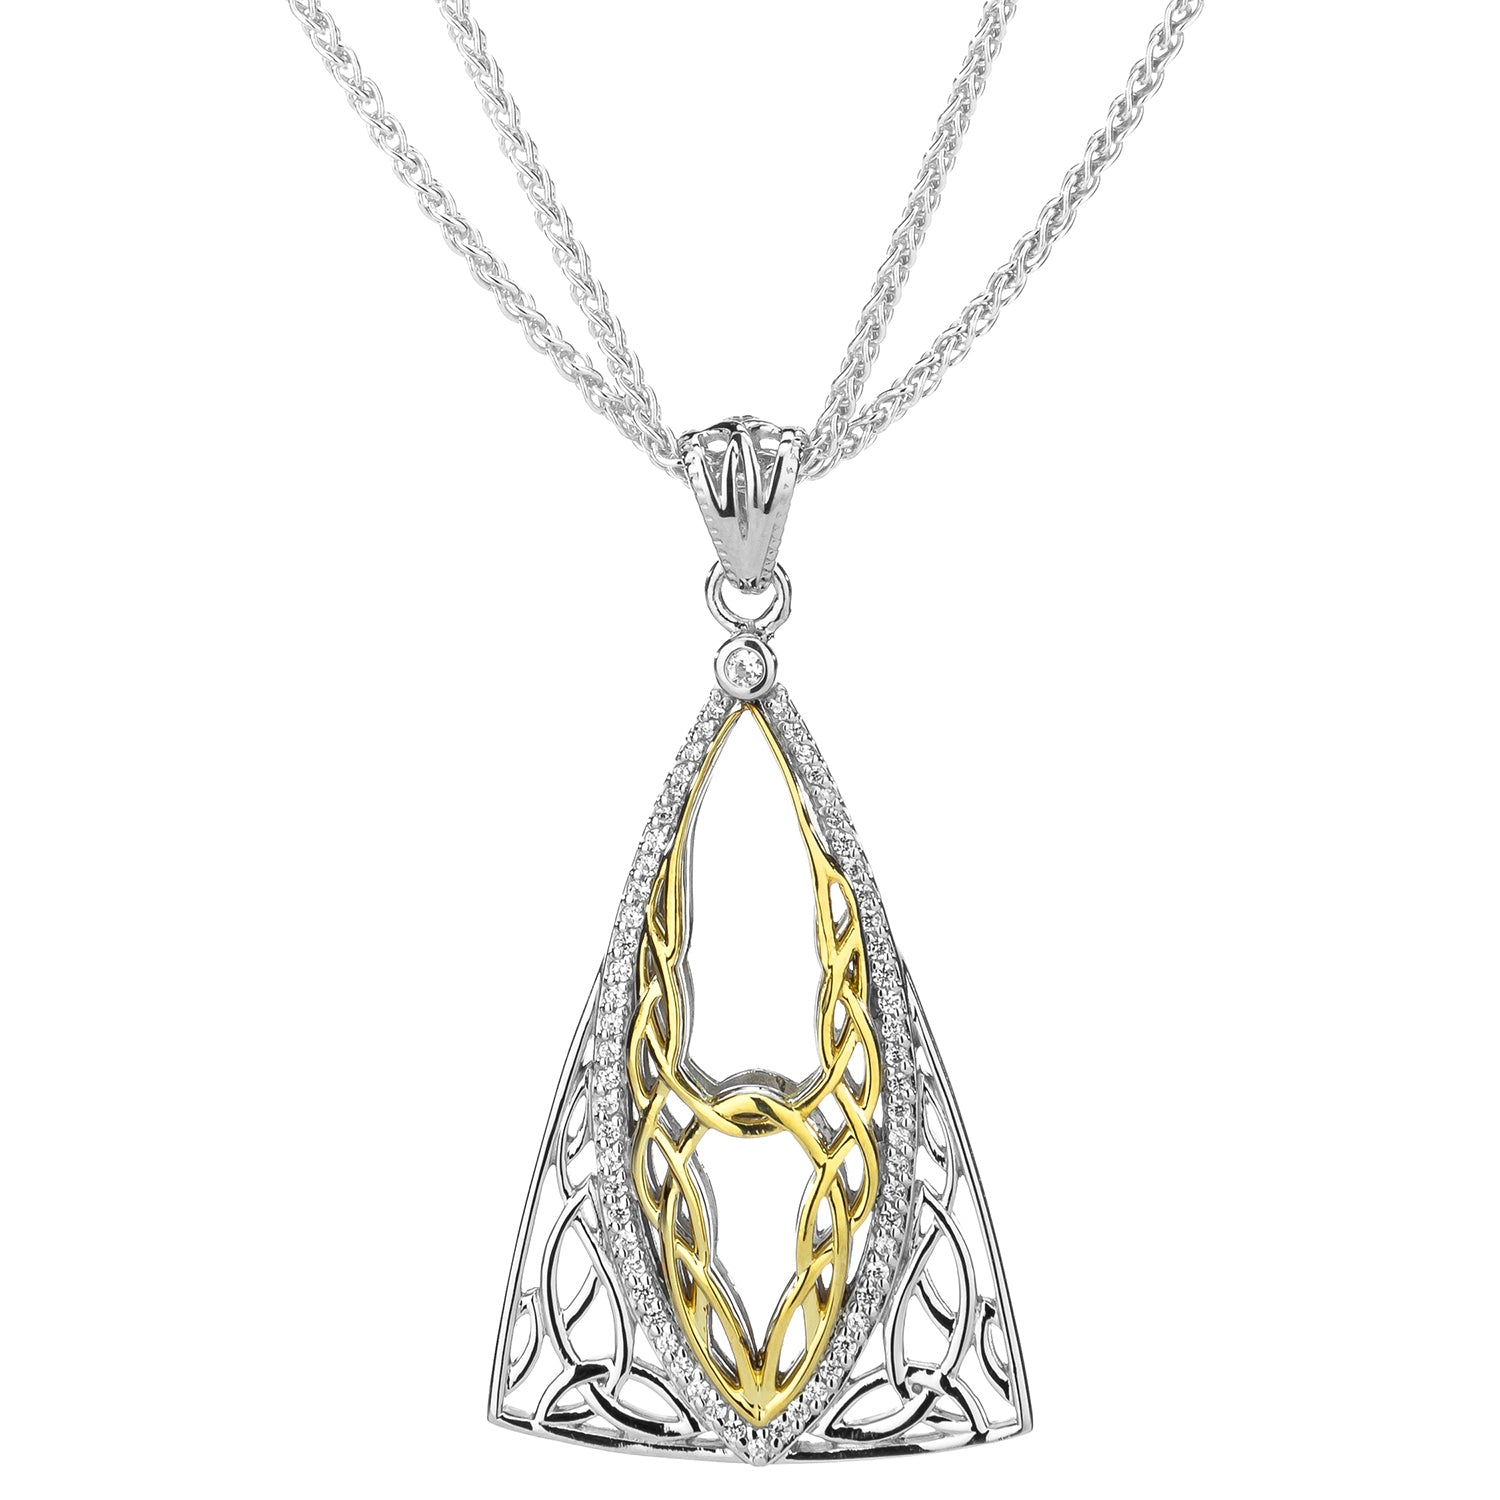 Pendant Rhodium 10k CZ Tower Gateway Pendant from welch and company jewelers near syracuse ny